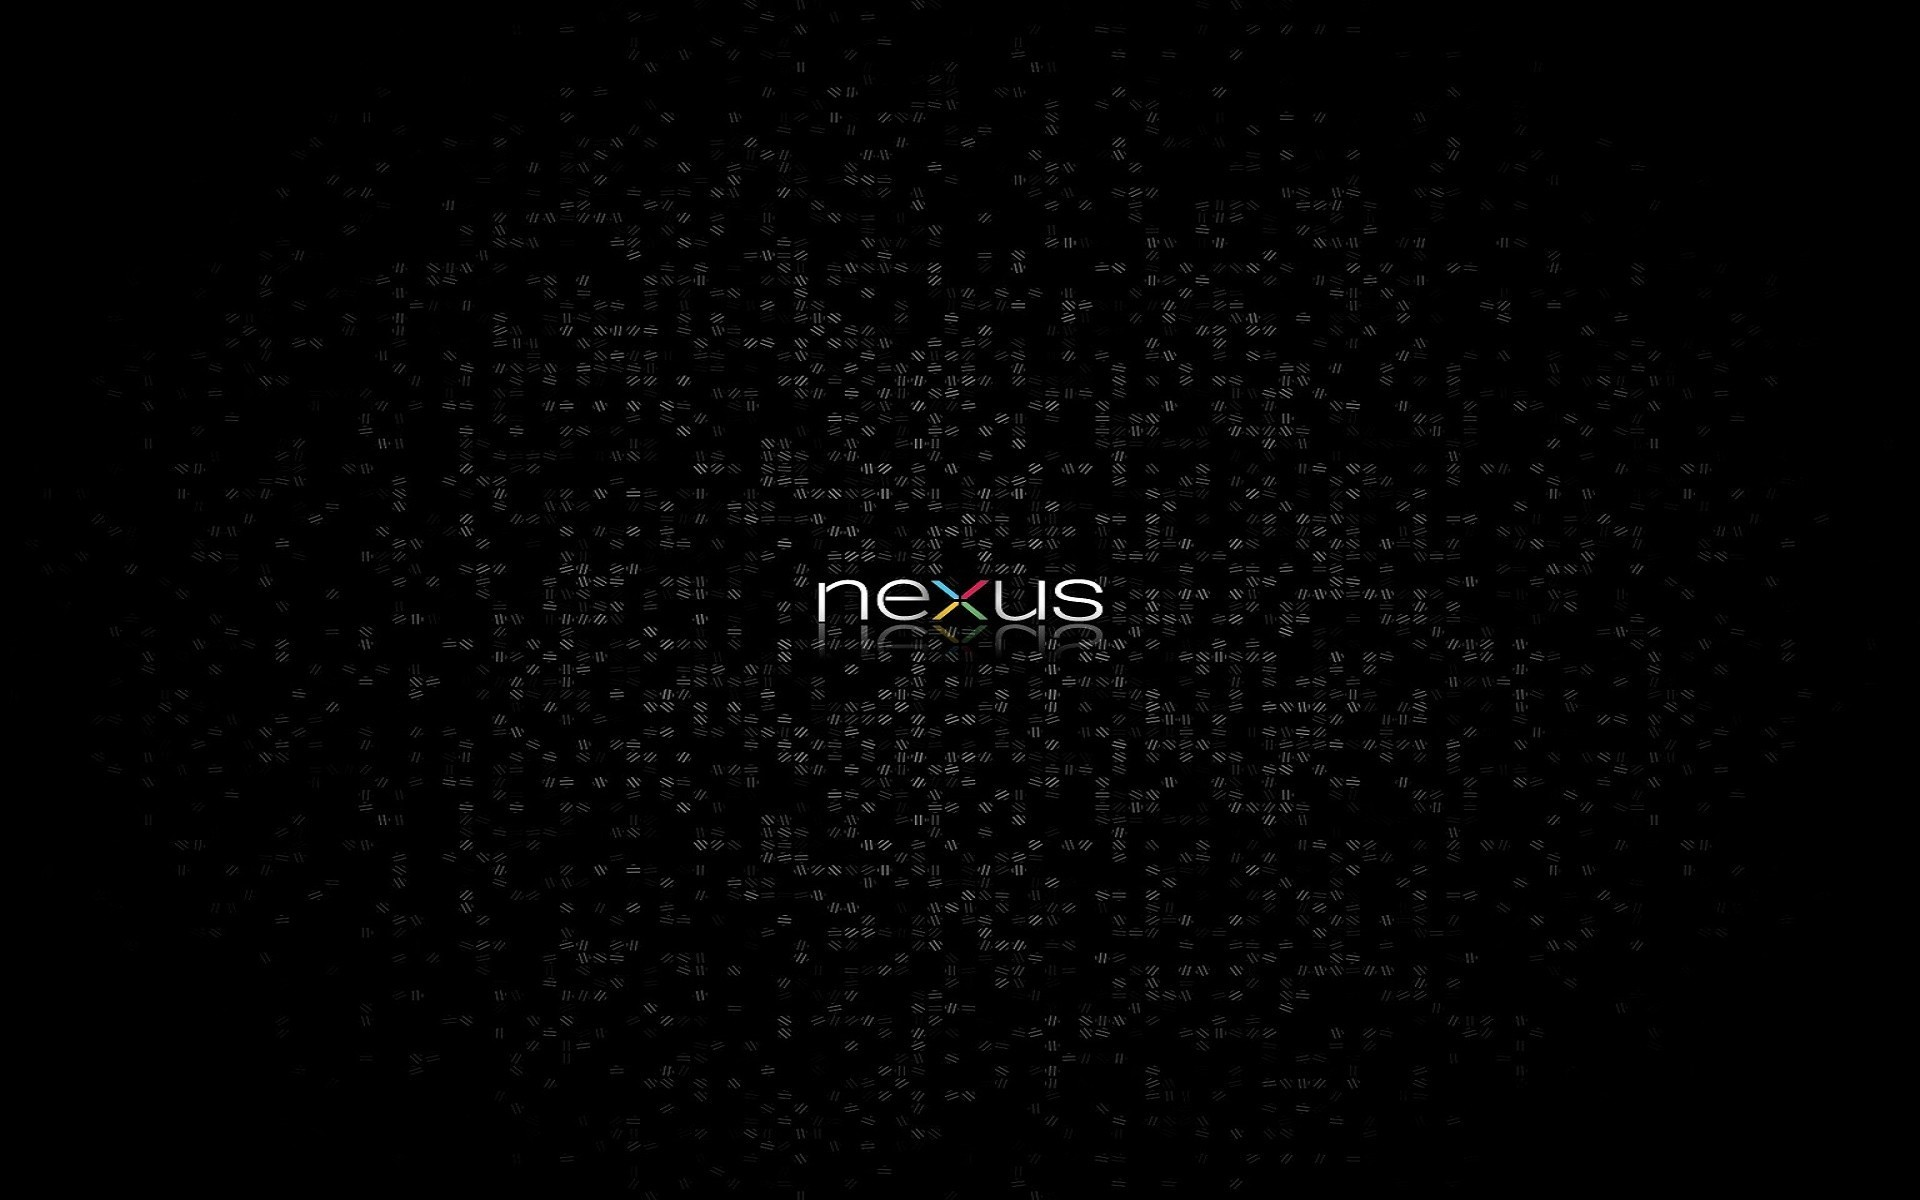 1920x1200  logo nexus 6 wallpapers hd background wallpapers free amazing  tablet smart phone 4k high definition 1920×1200 Wallpaper HD